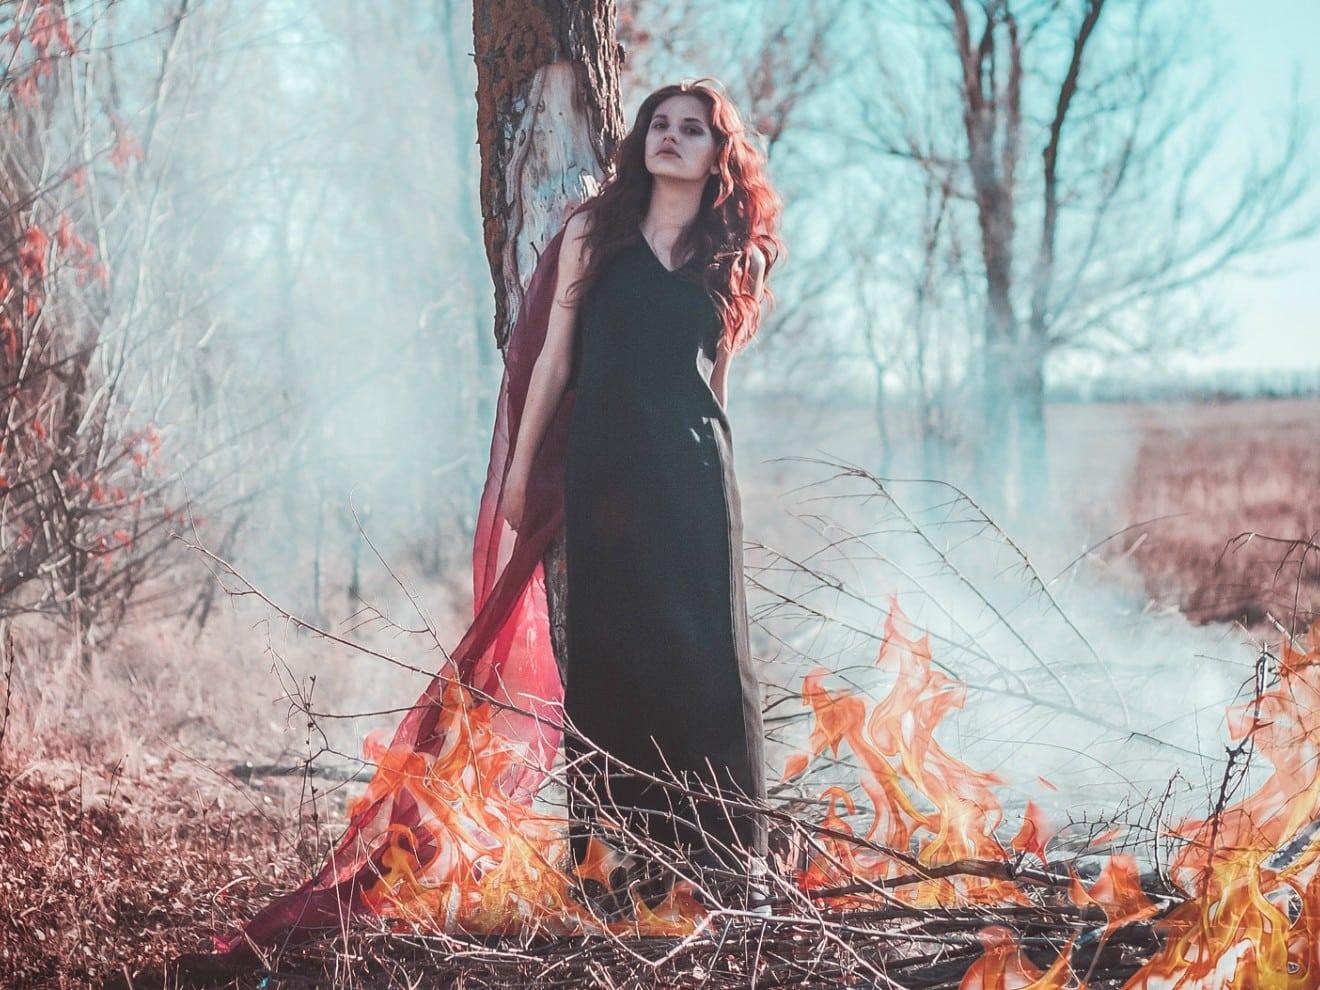 The Devil of the Inquisitors: Cases of Maleficium and Witchcraft